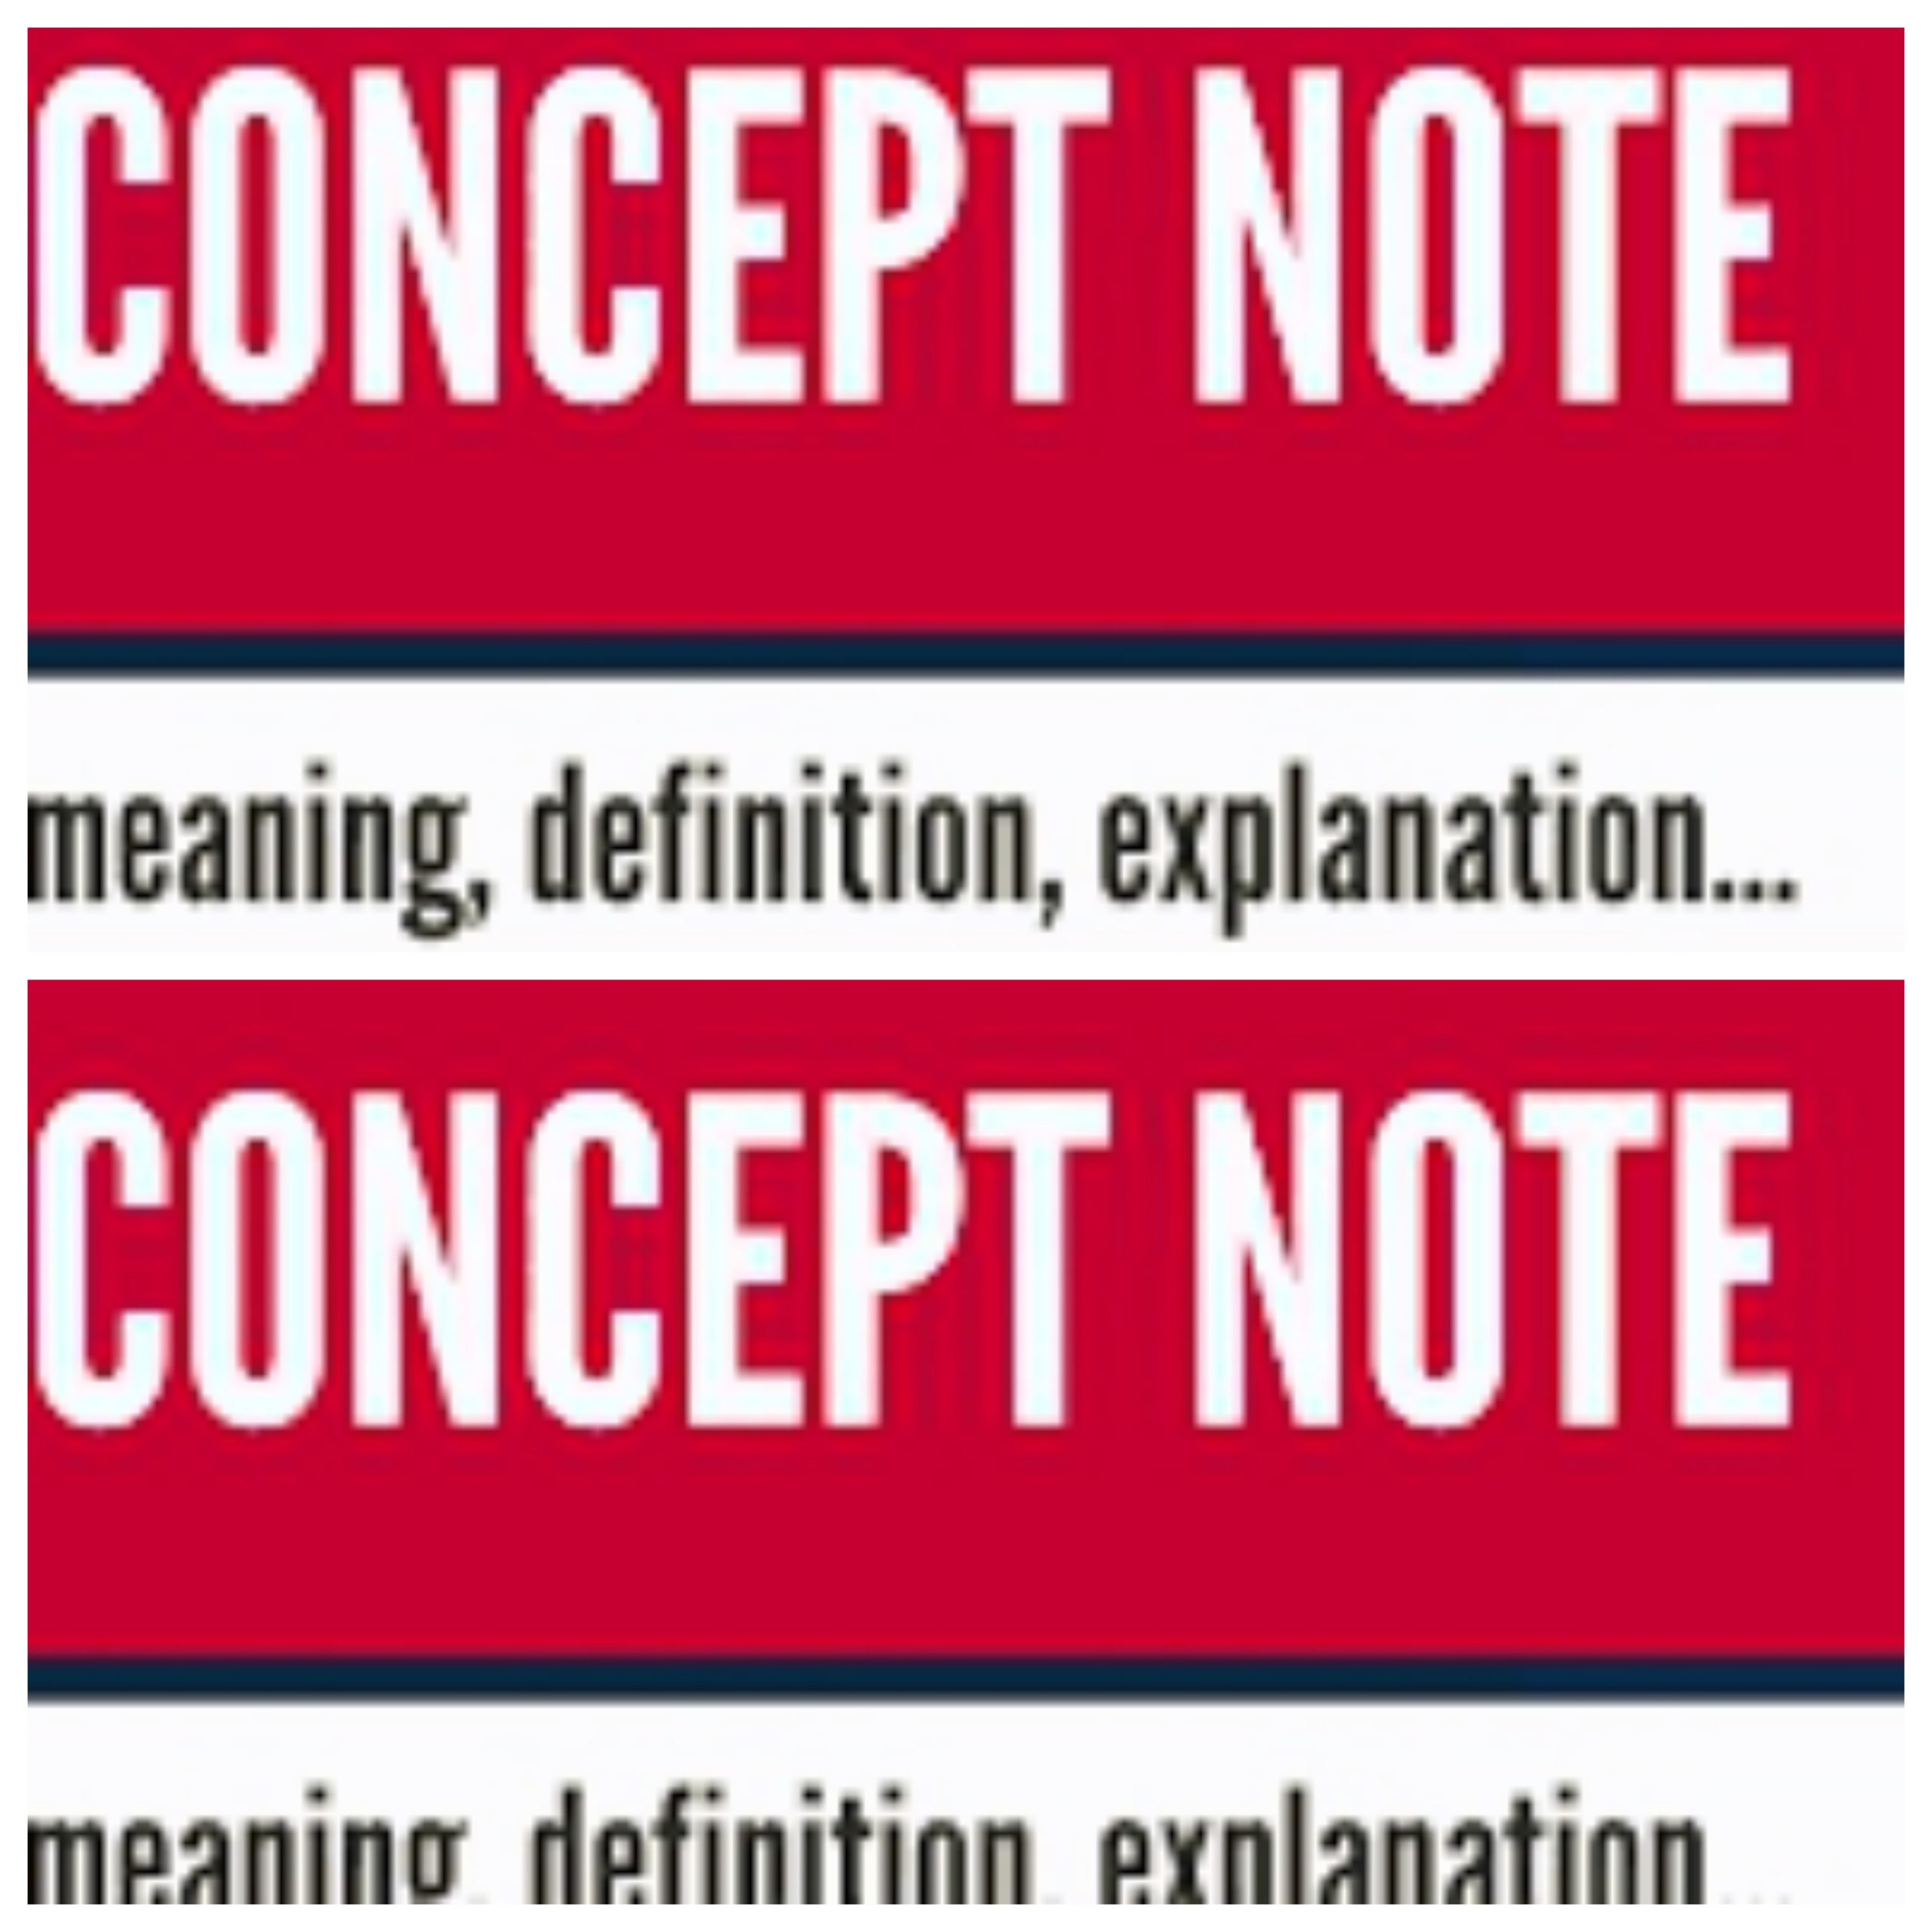 3 types of concept notes